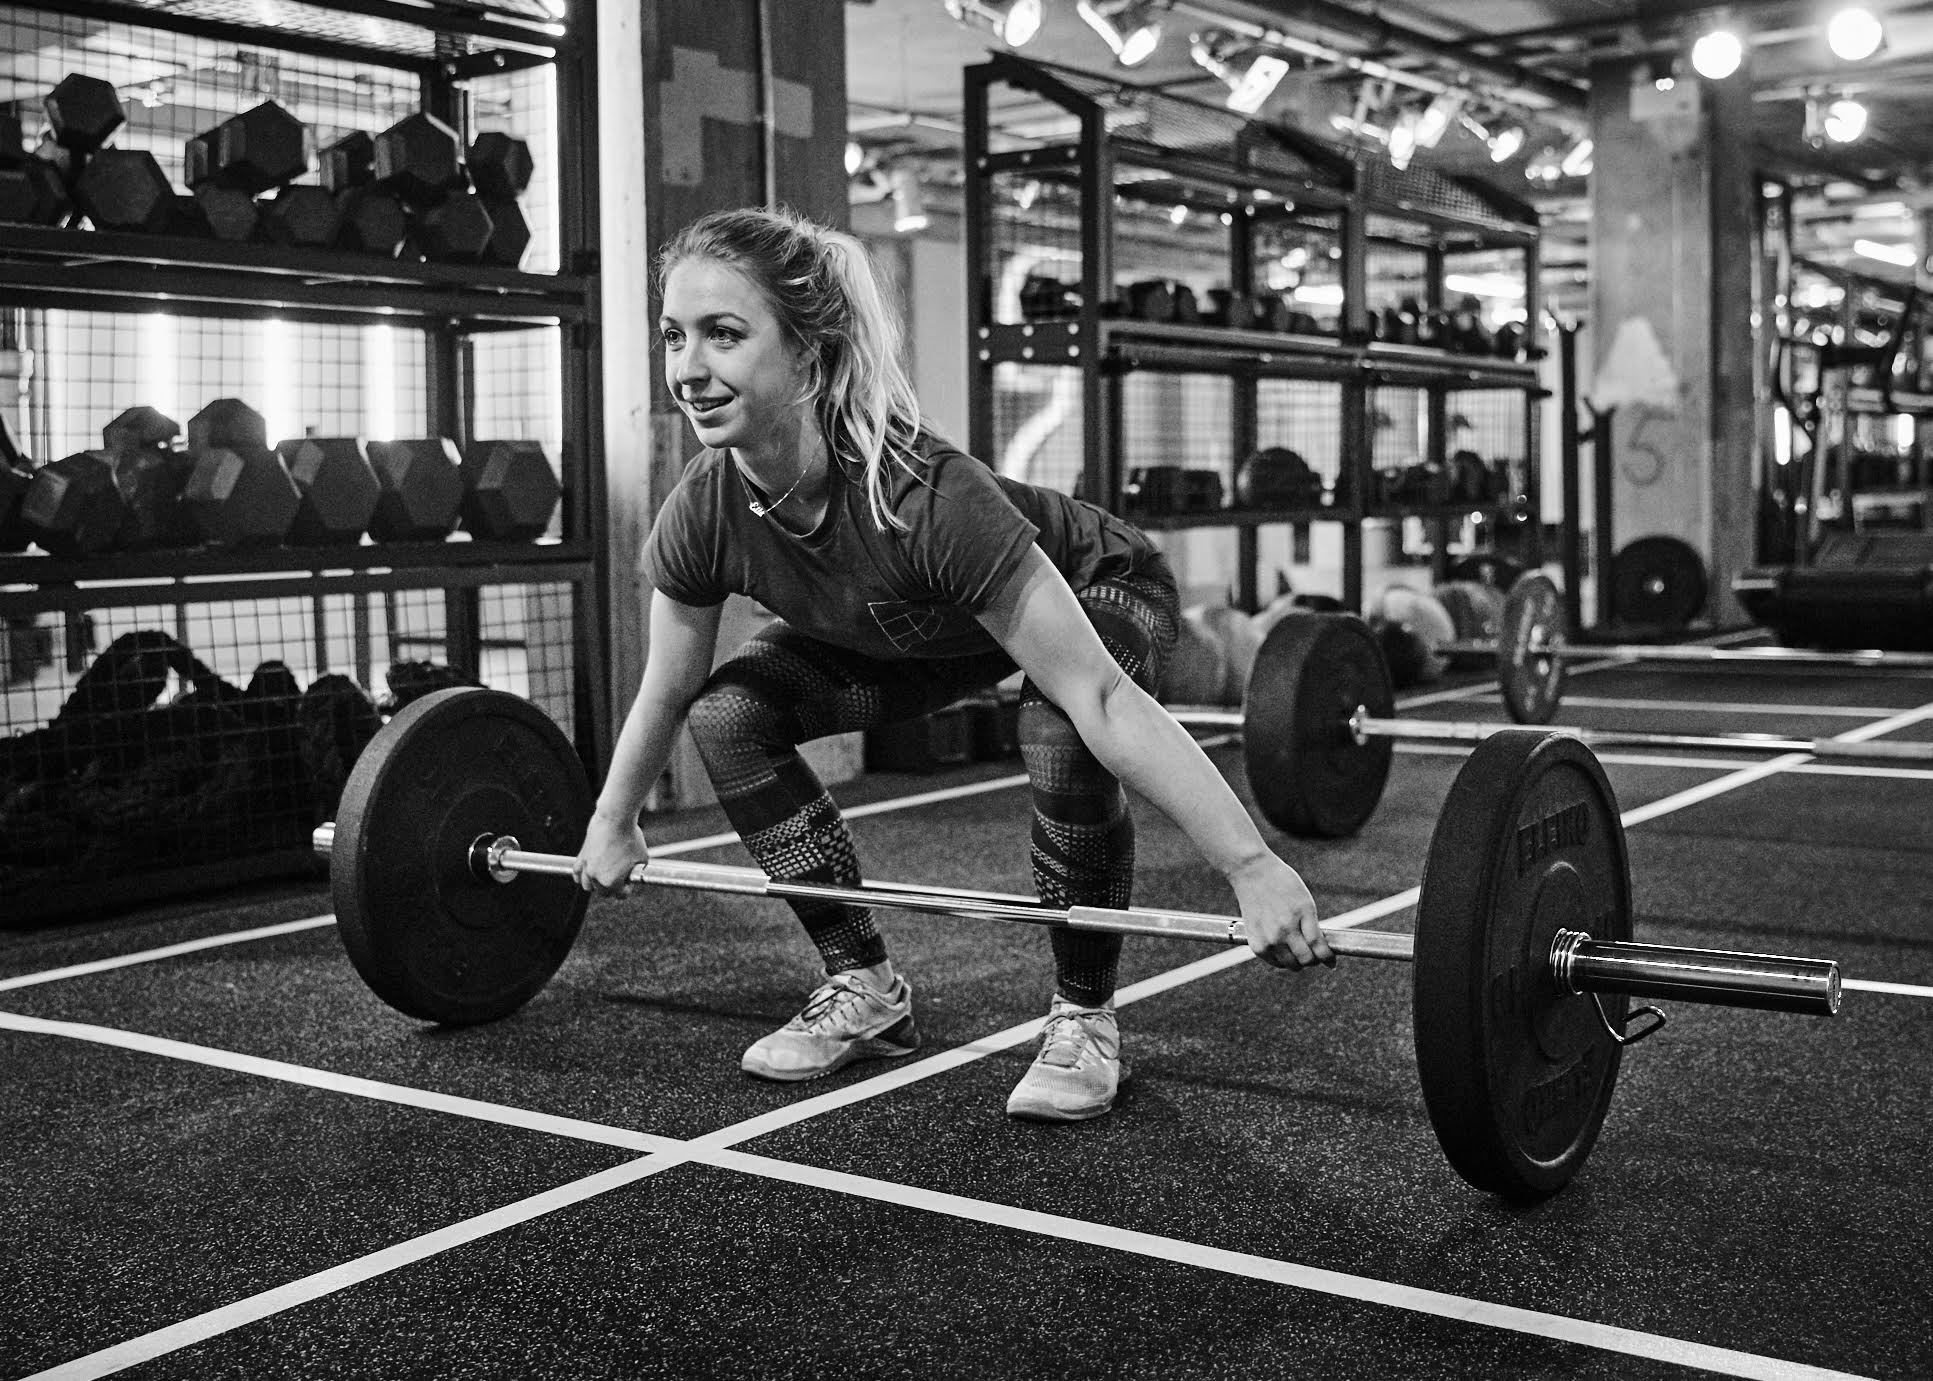 Binary Fitness Plans To Give CrossFit The Boutique Treatment